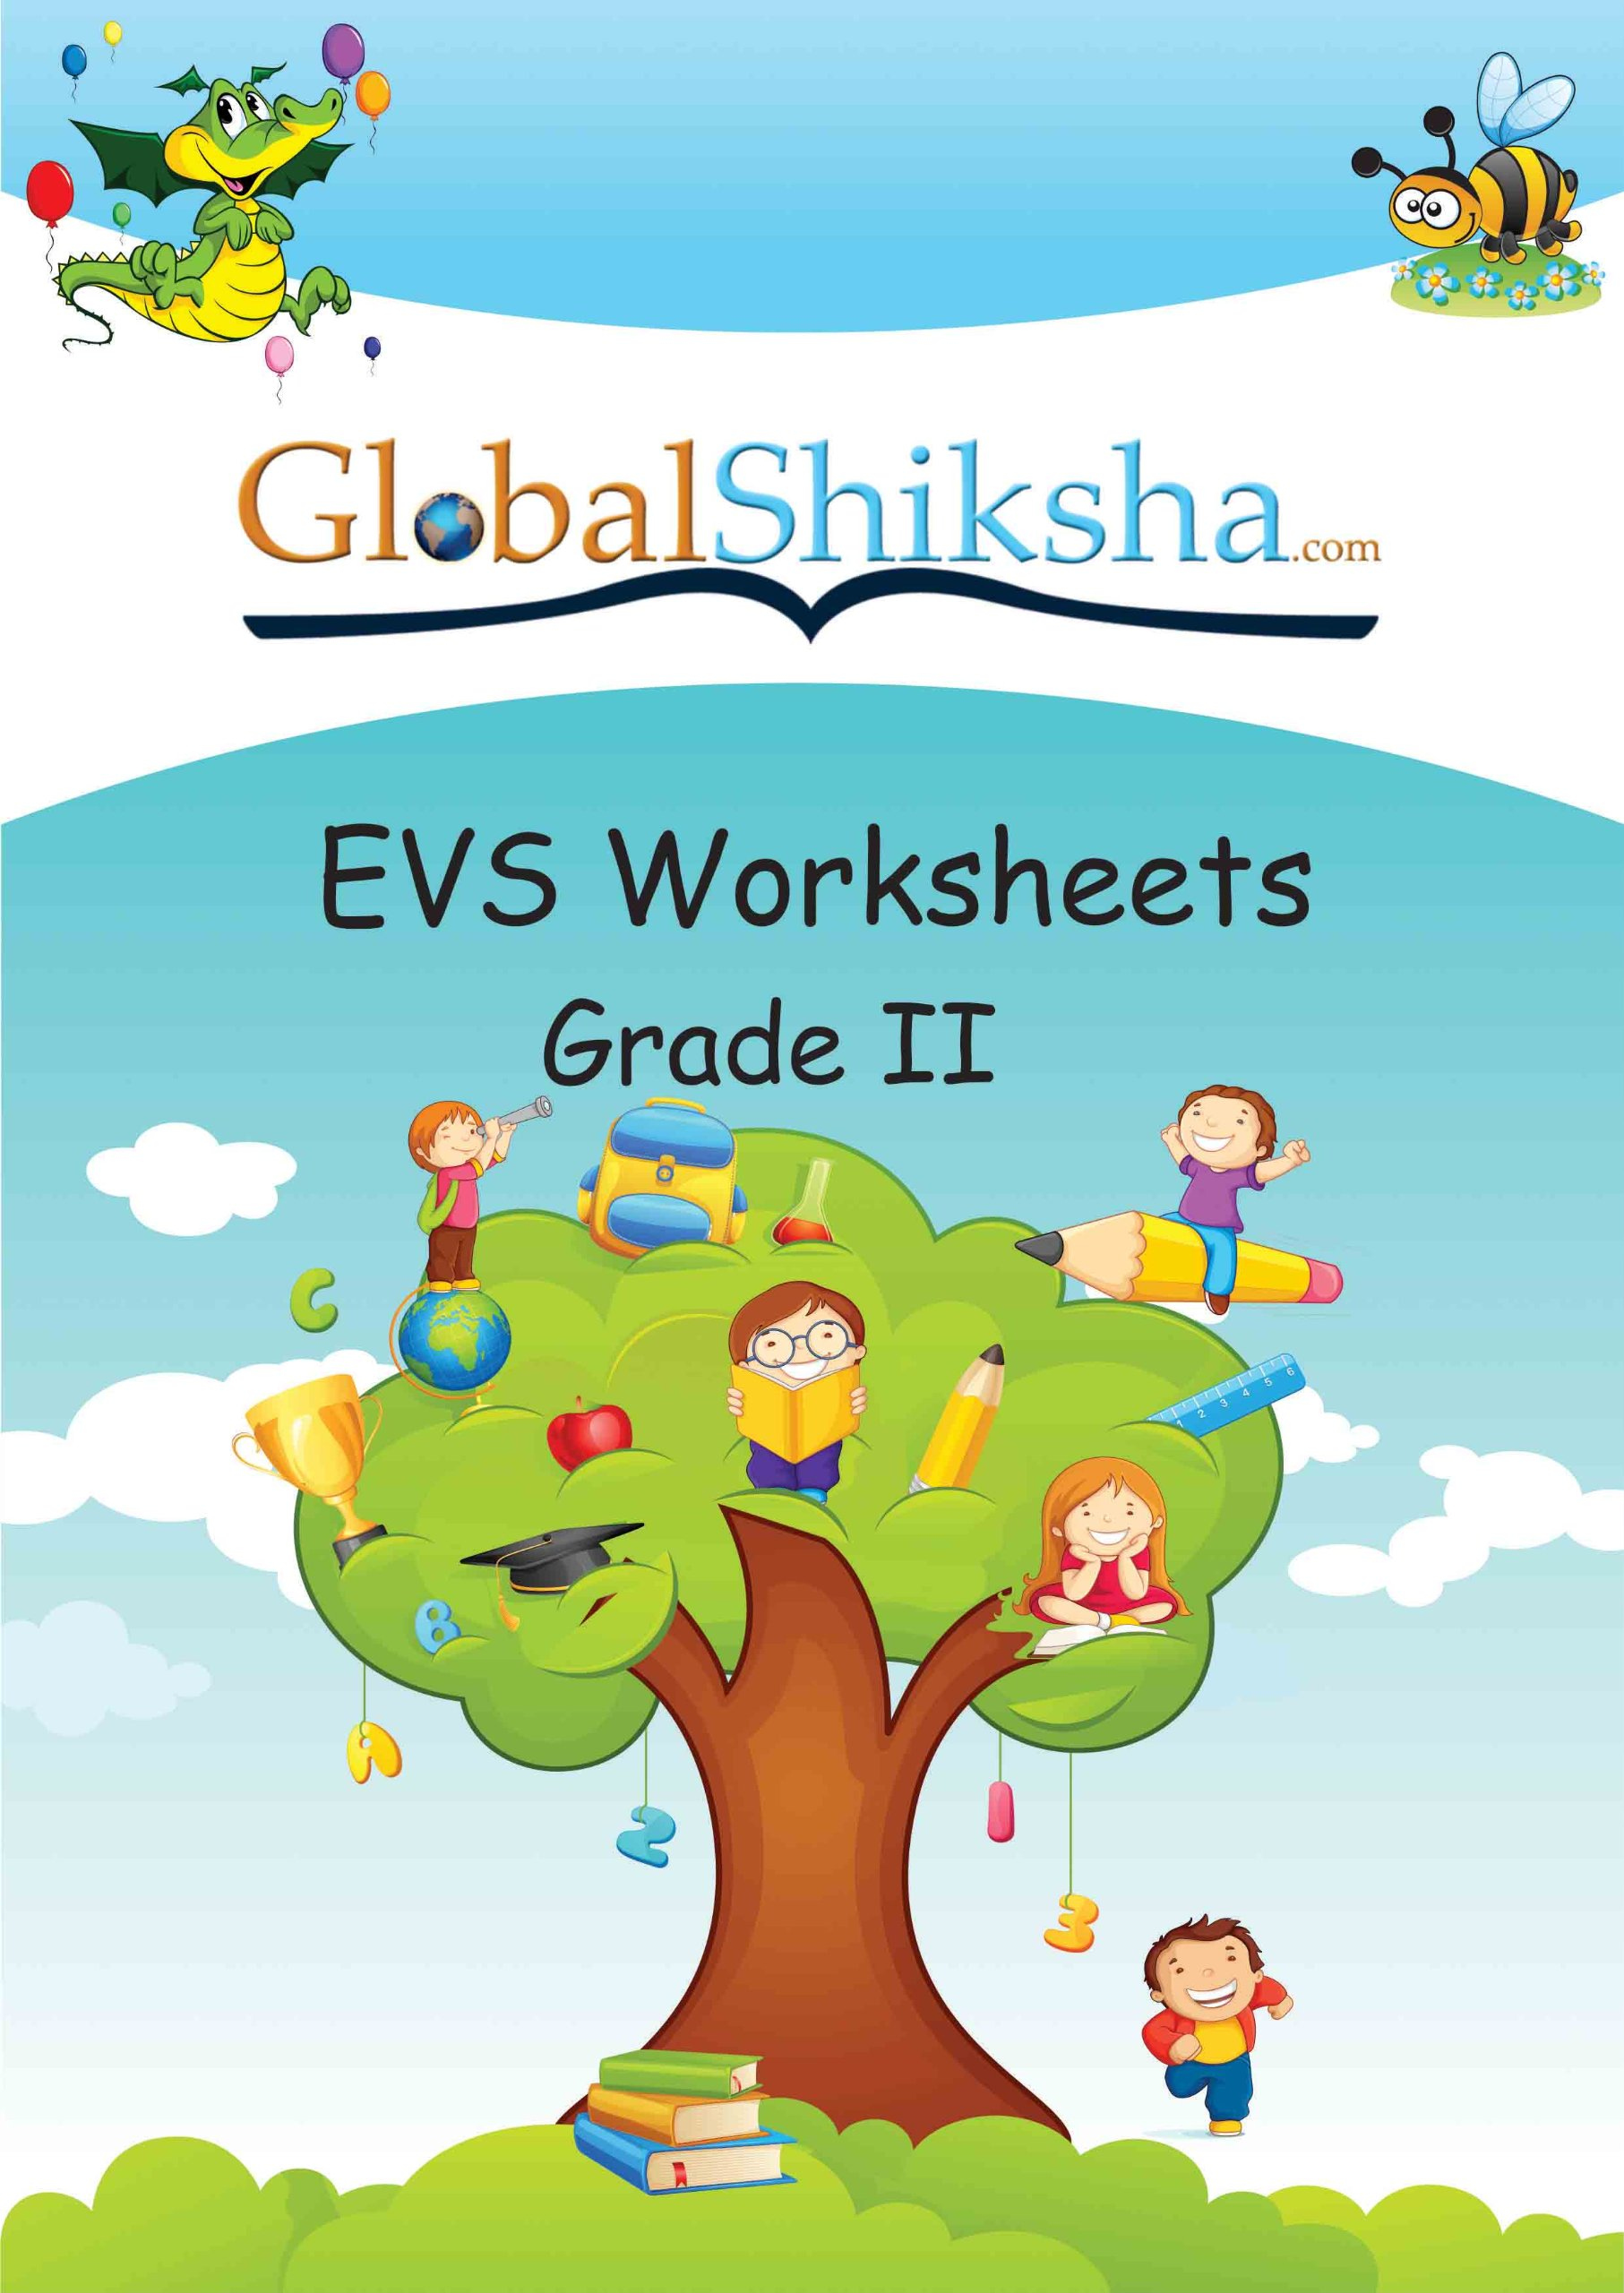 Free Printable Evs Worksheets For Grade 2 - mattawa